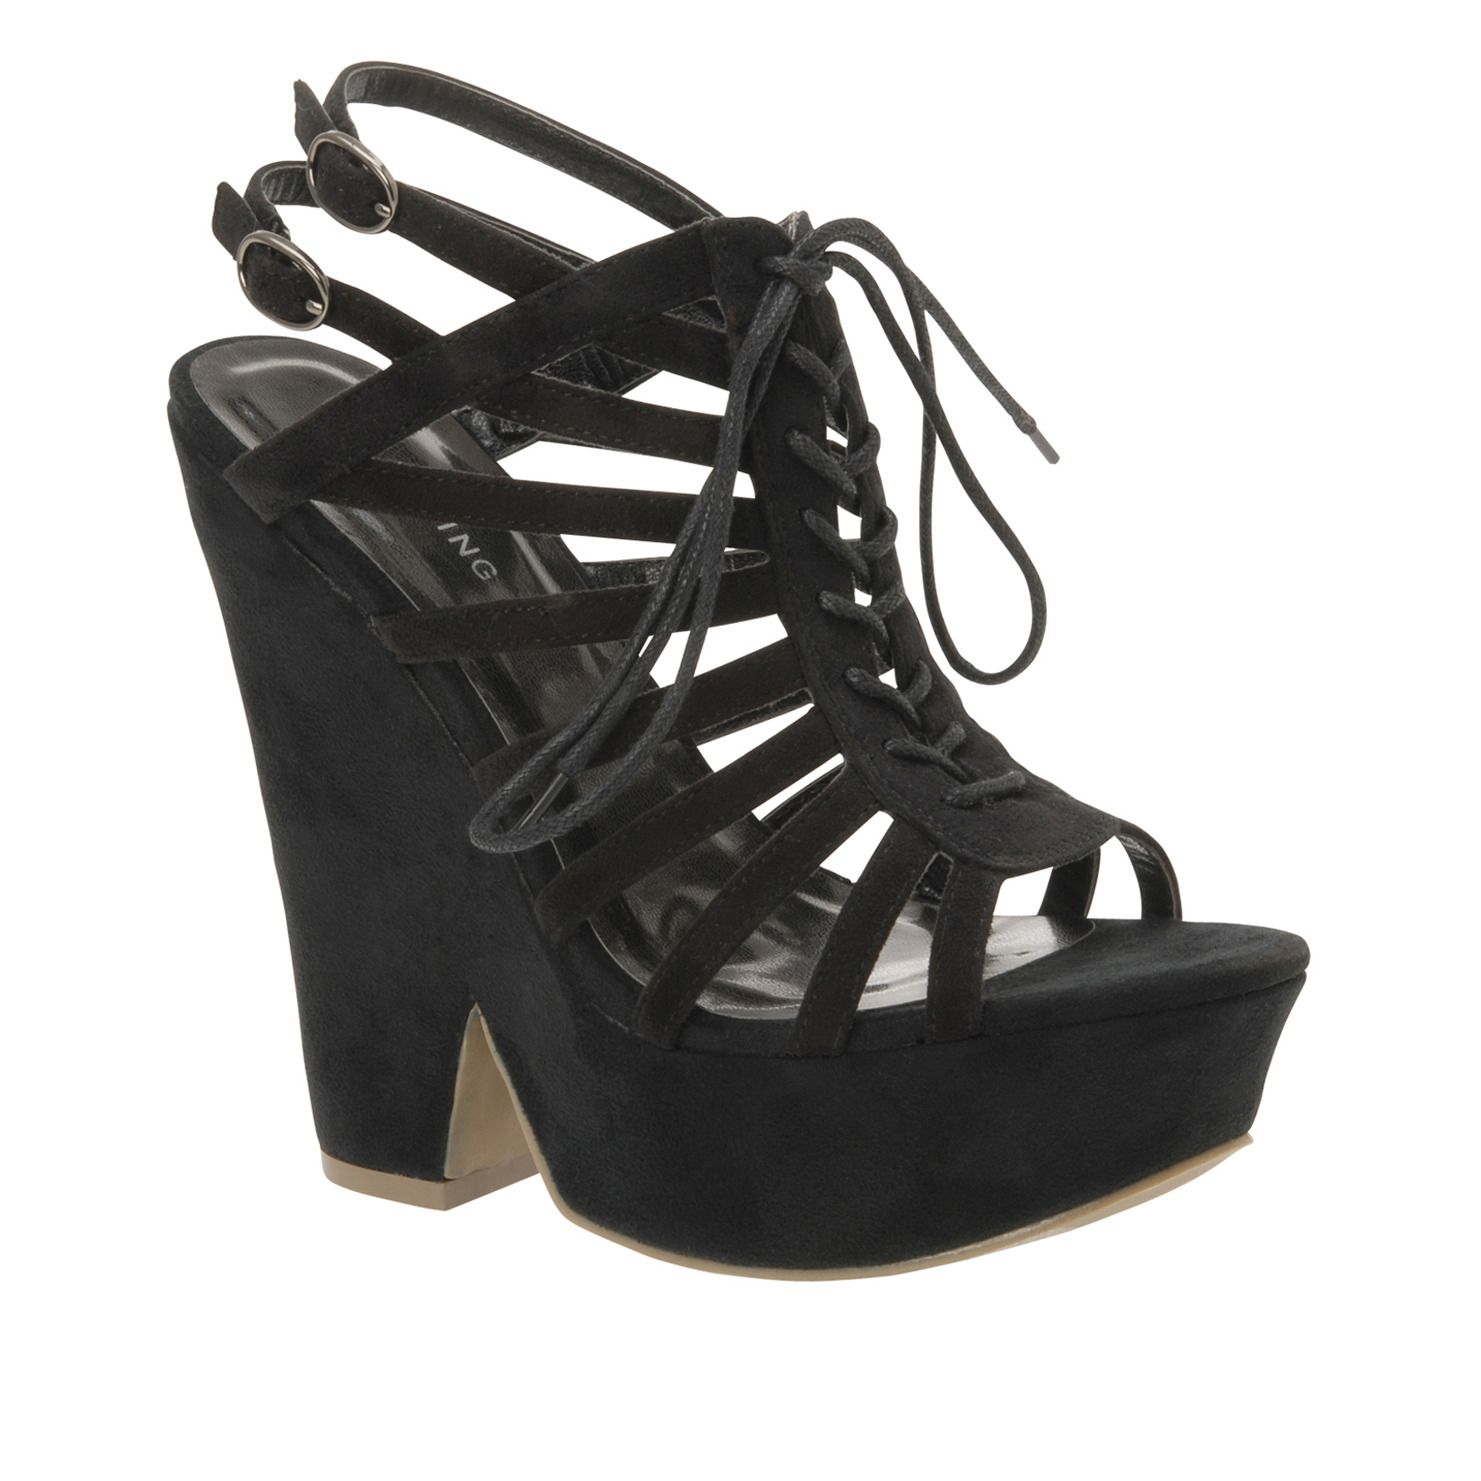 seriously thinking of getting this pair